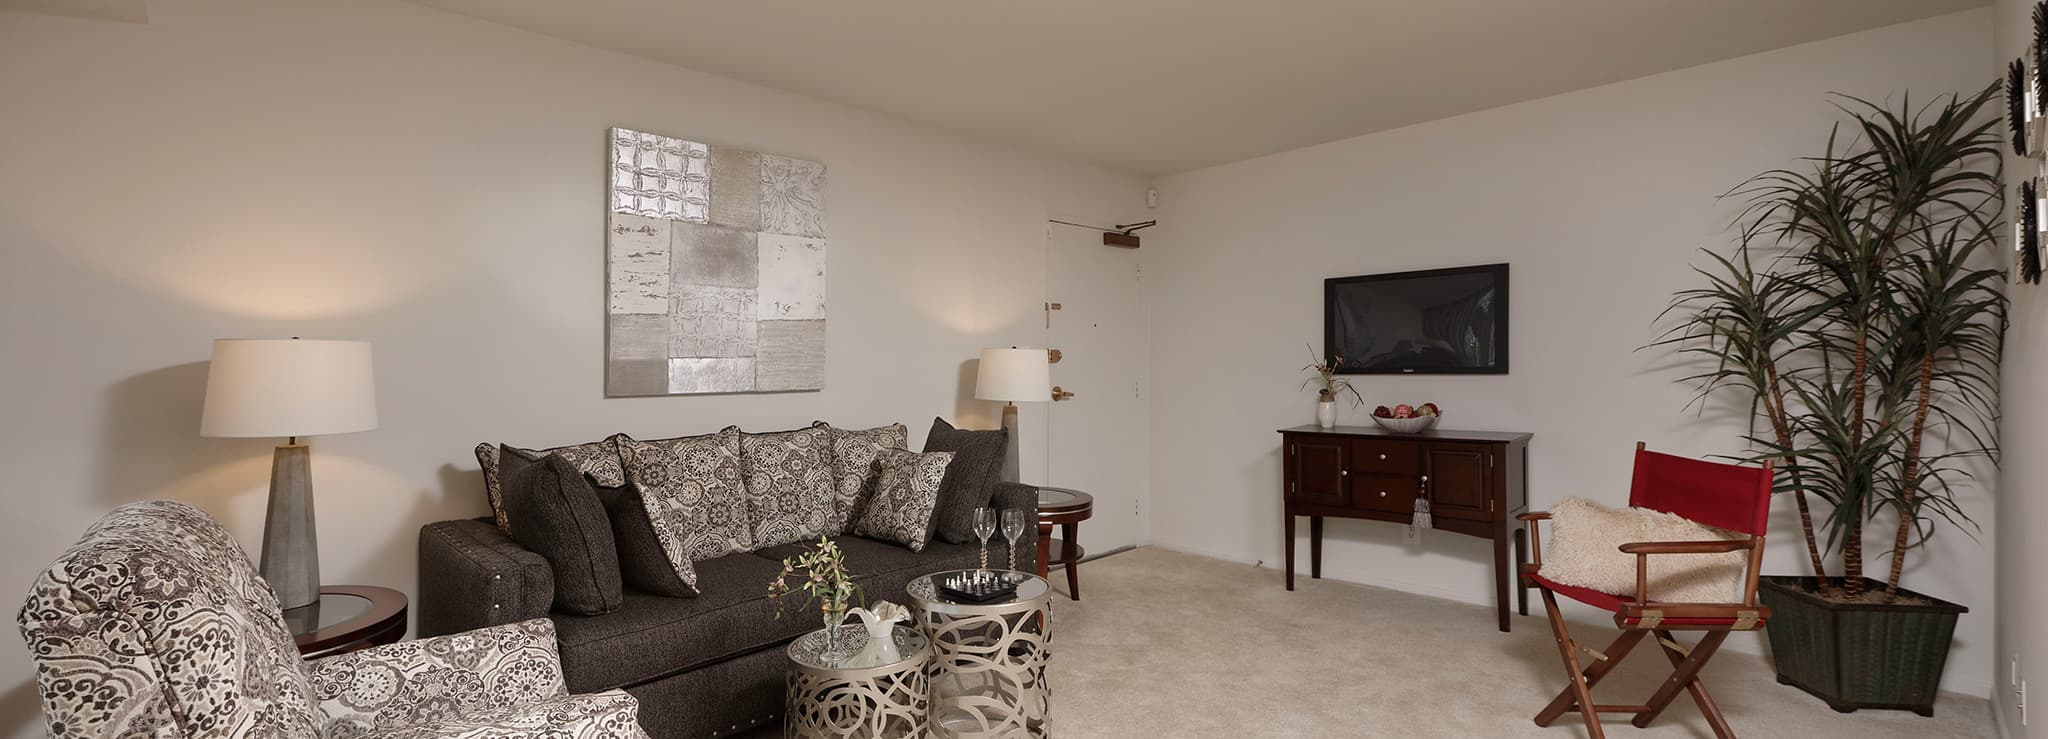 Rollins Park Apartments living room